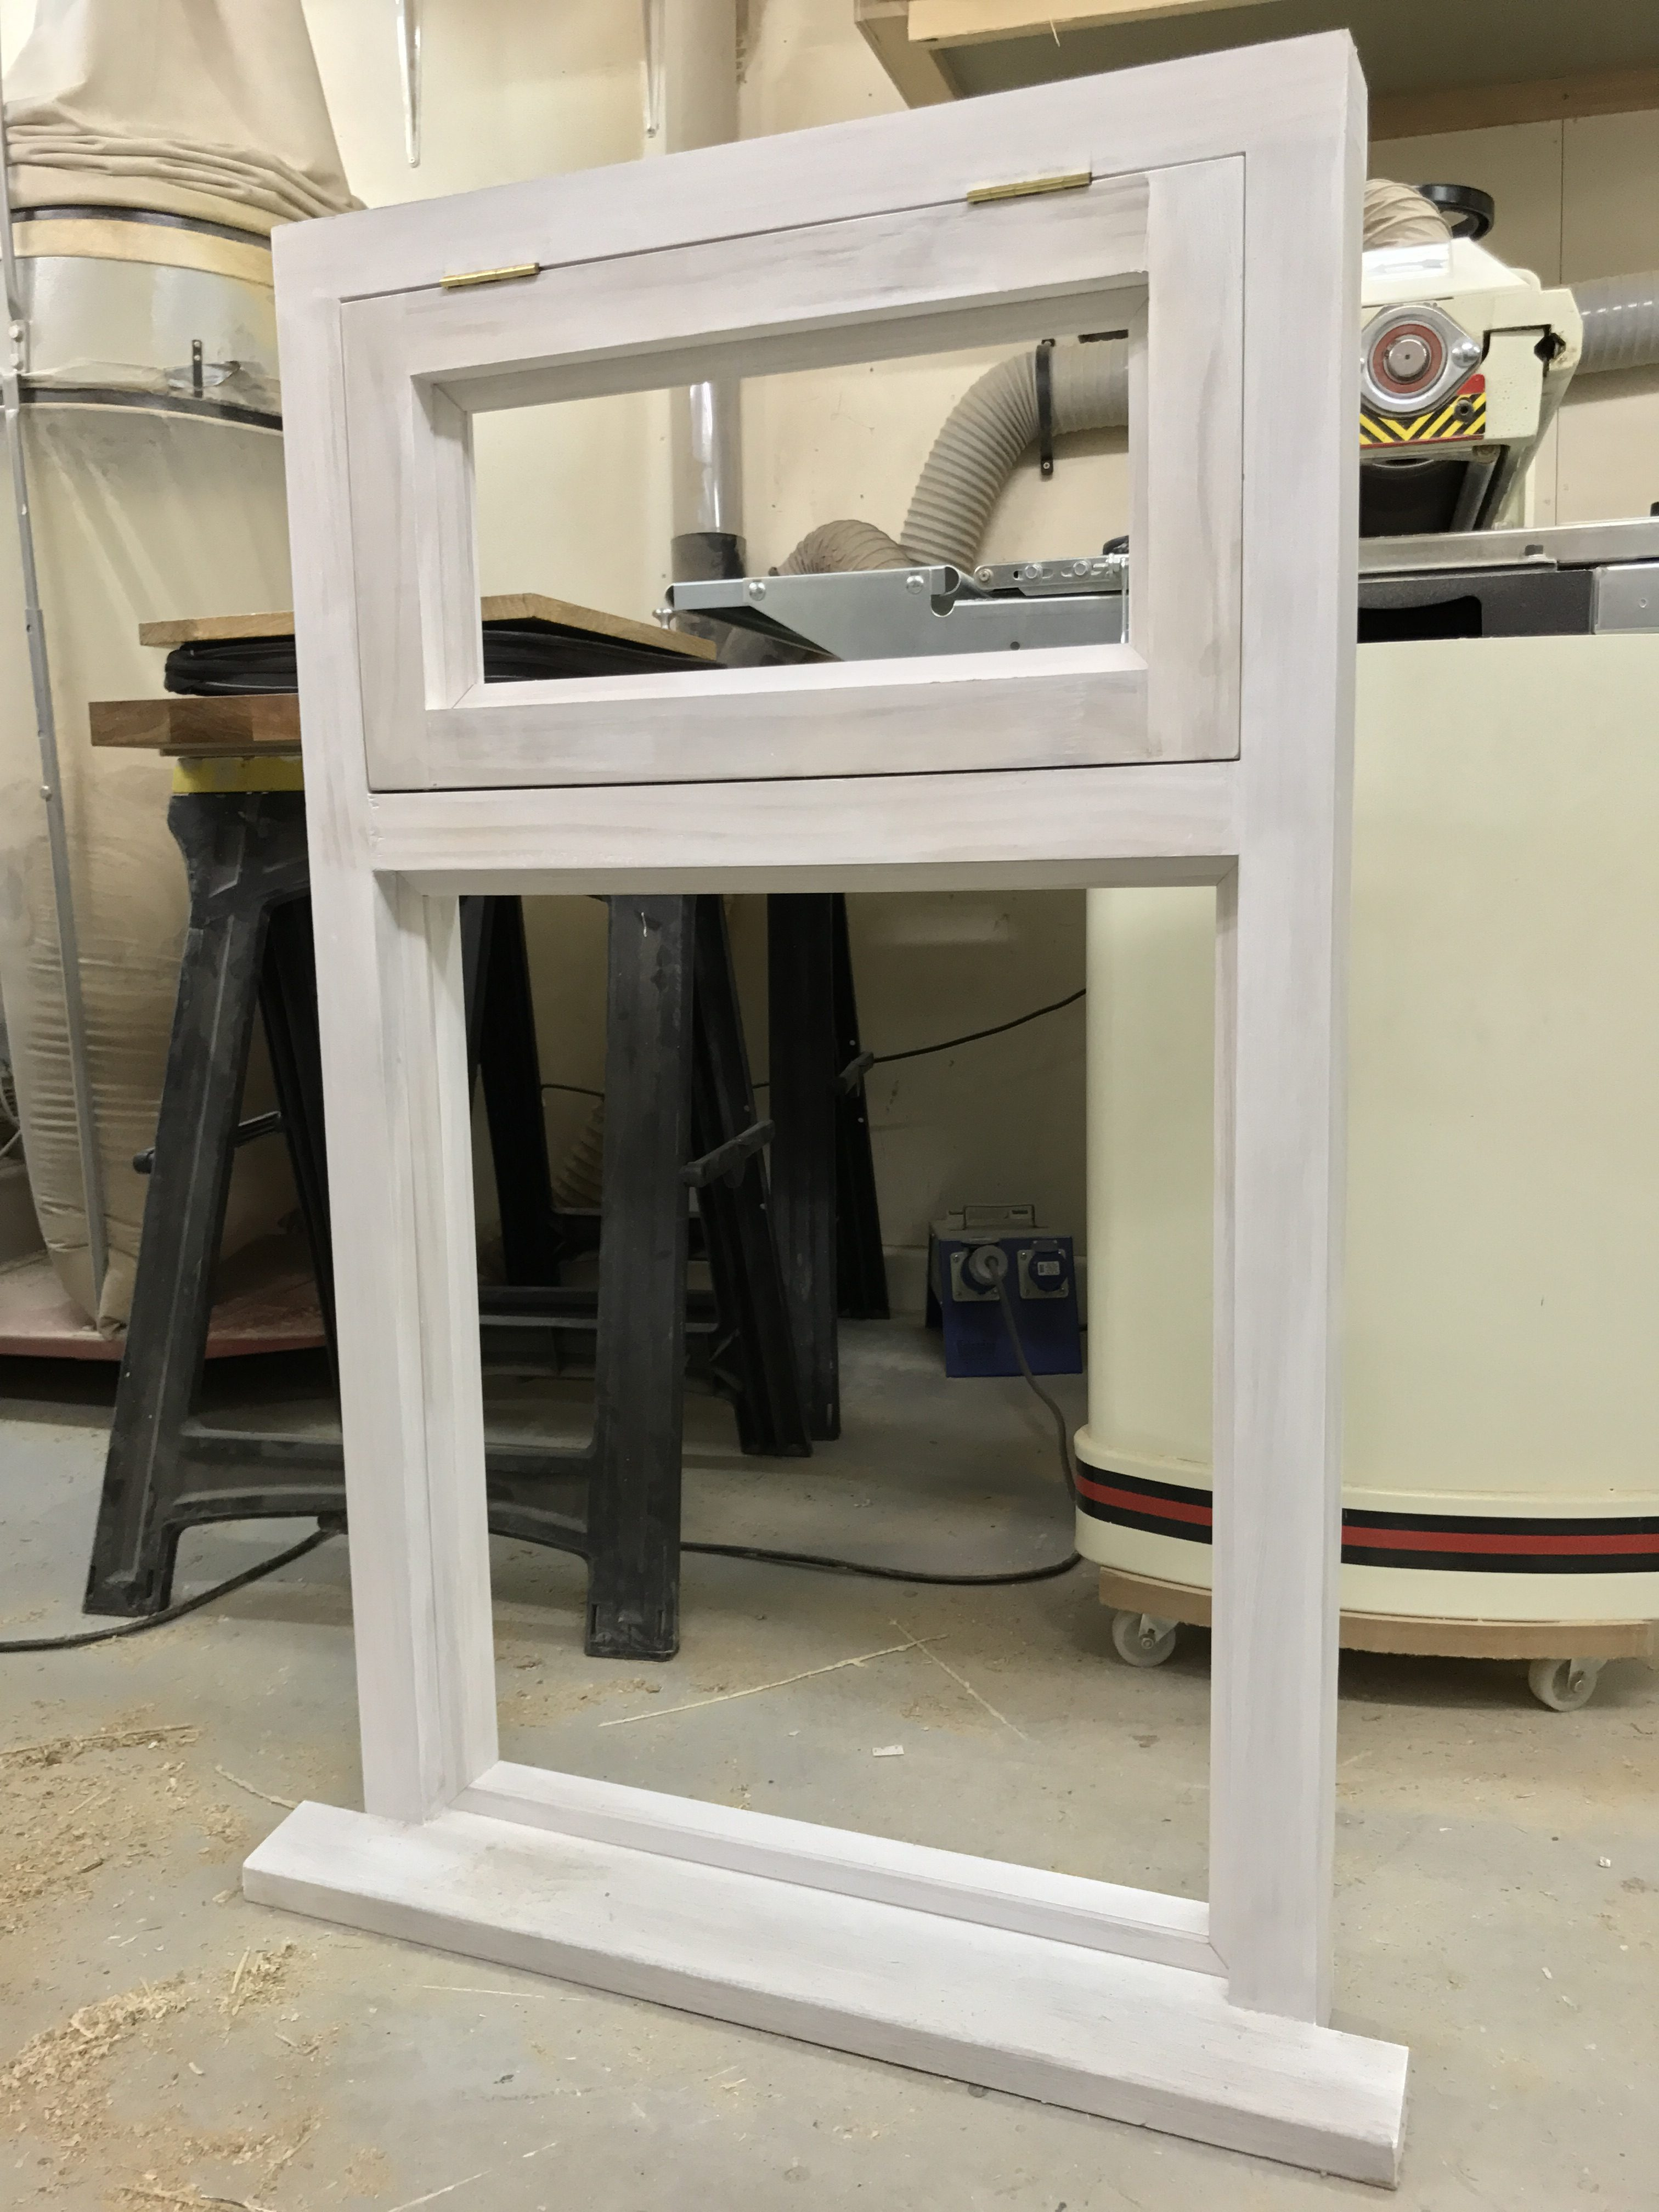 Primed window ready to fit